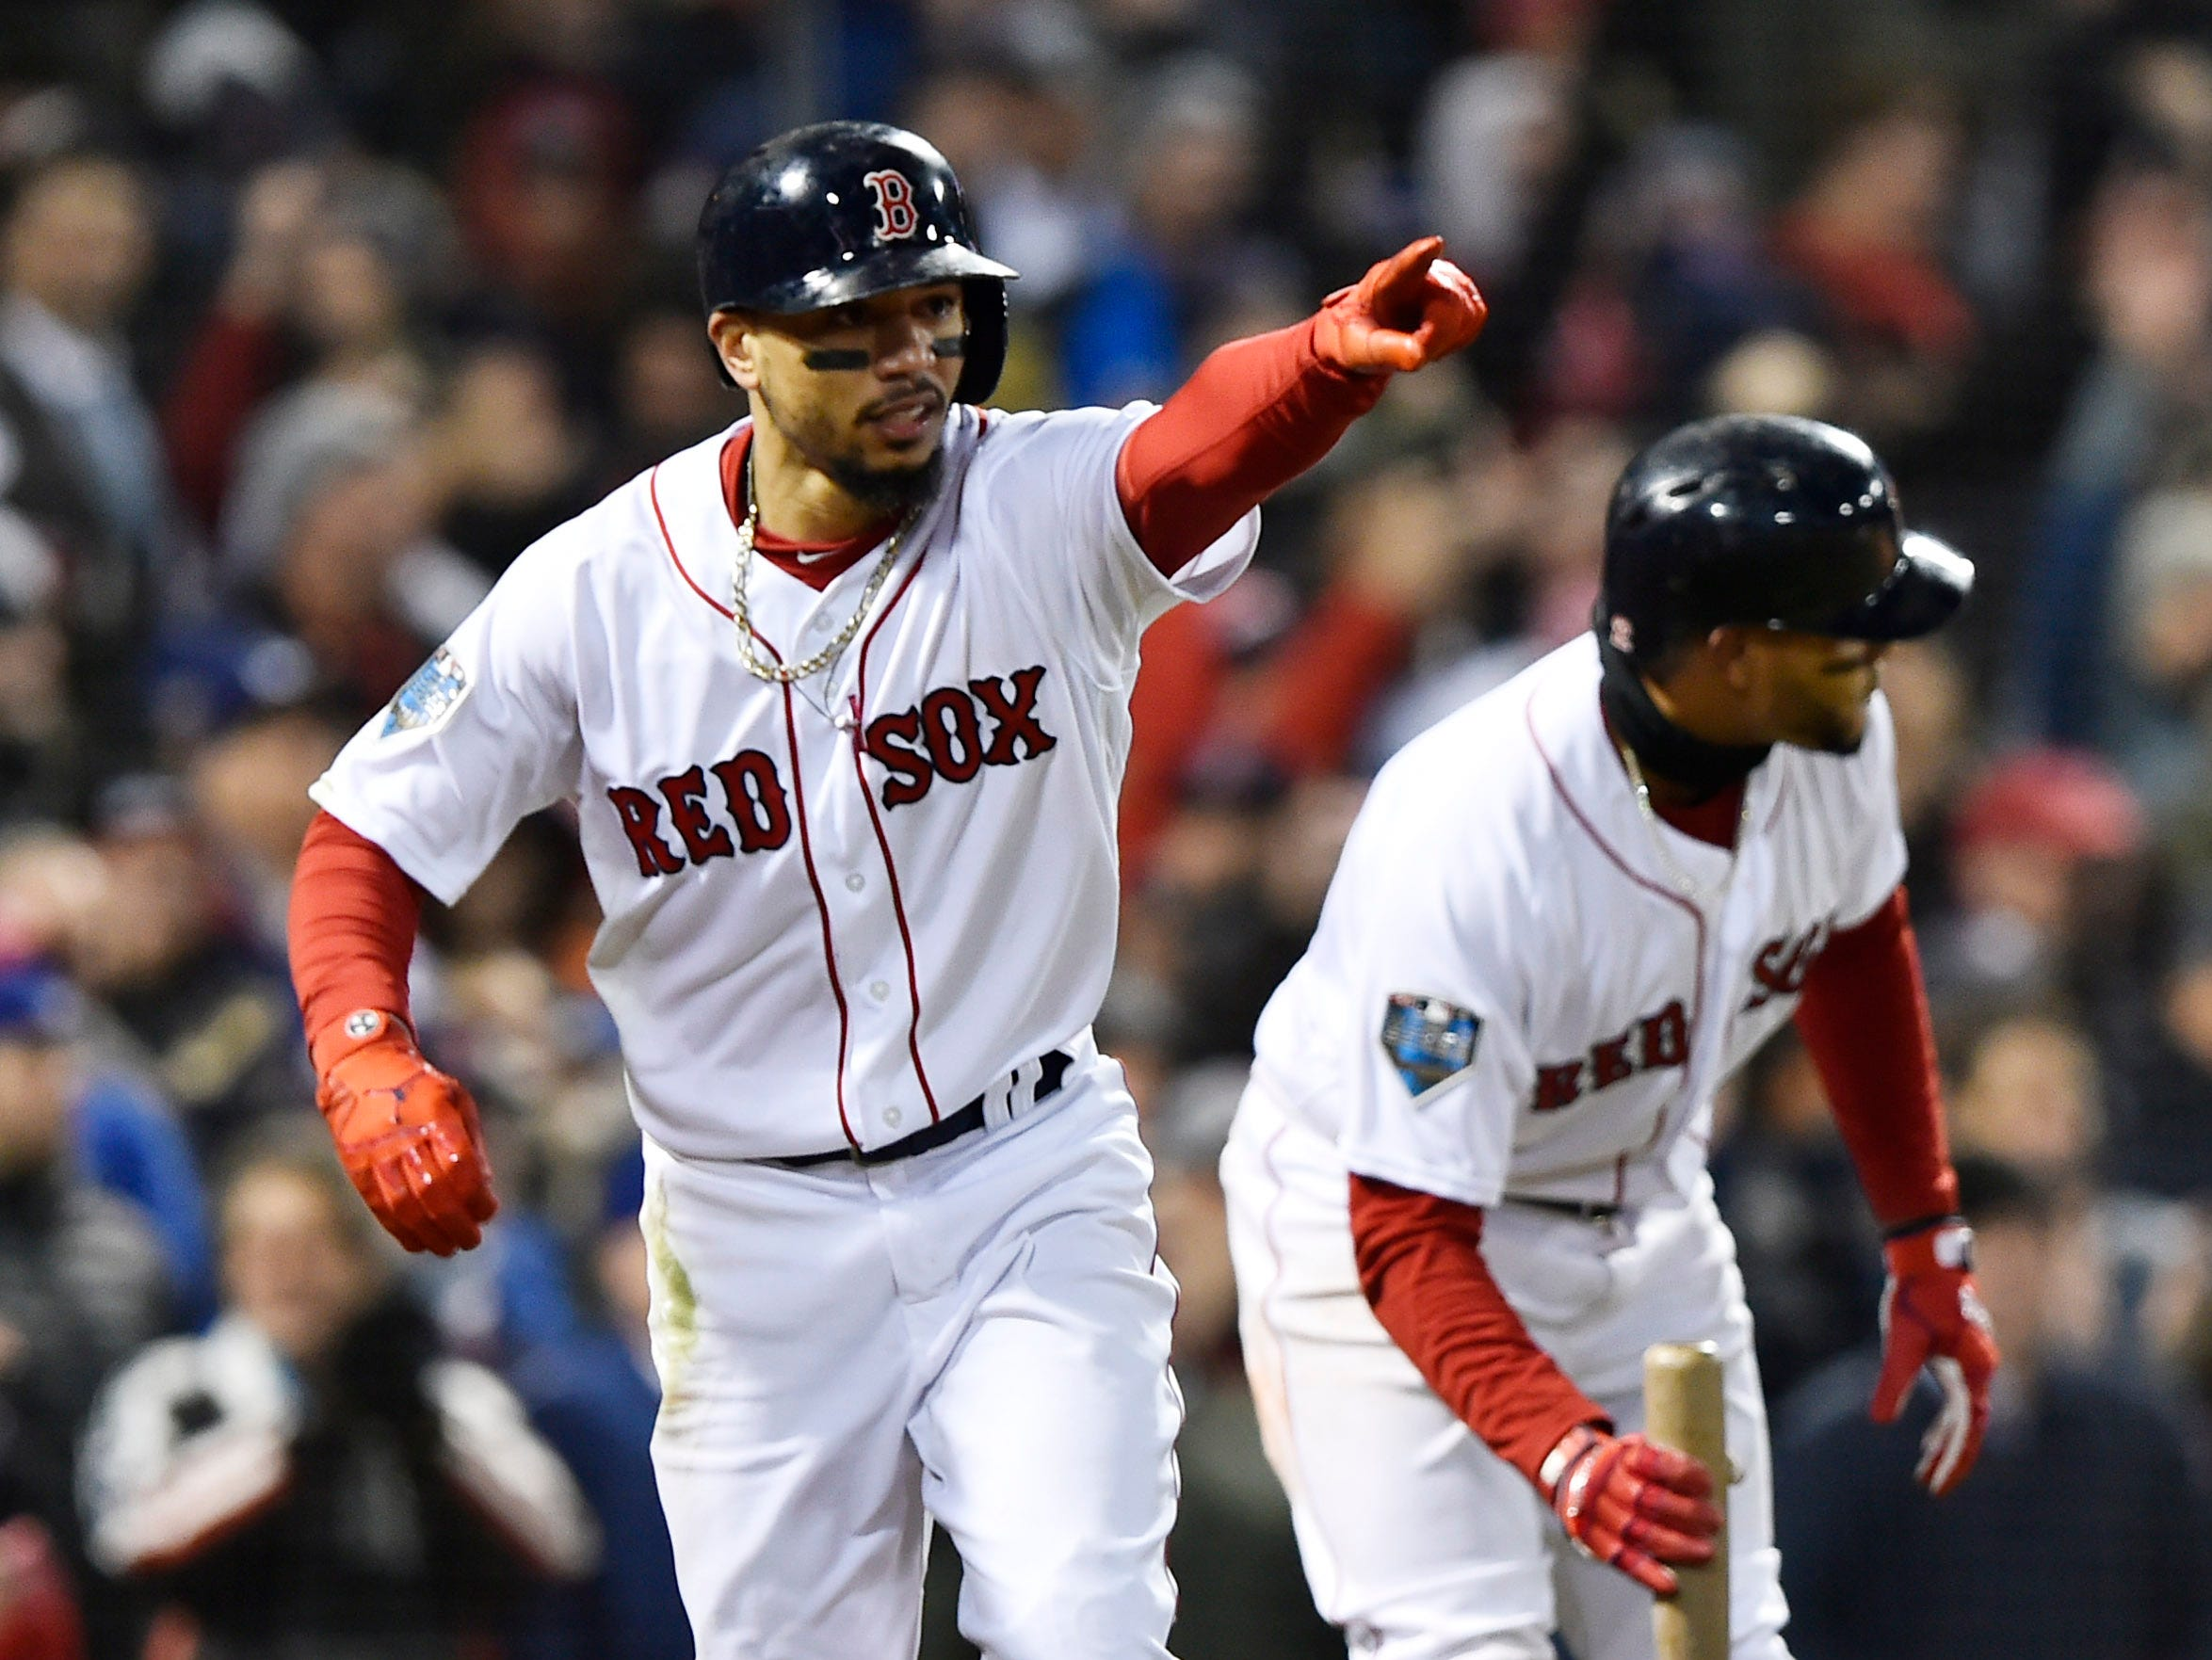 Game 2 at Fenway Park: Mookie Betts reacts after scoring in the fifth inning.